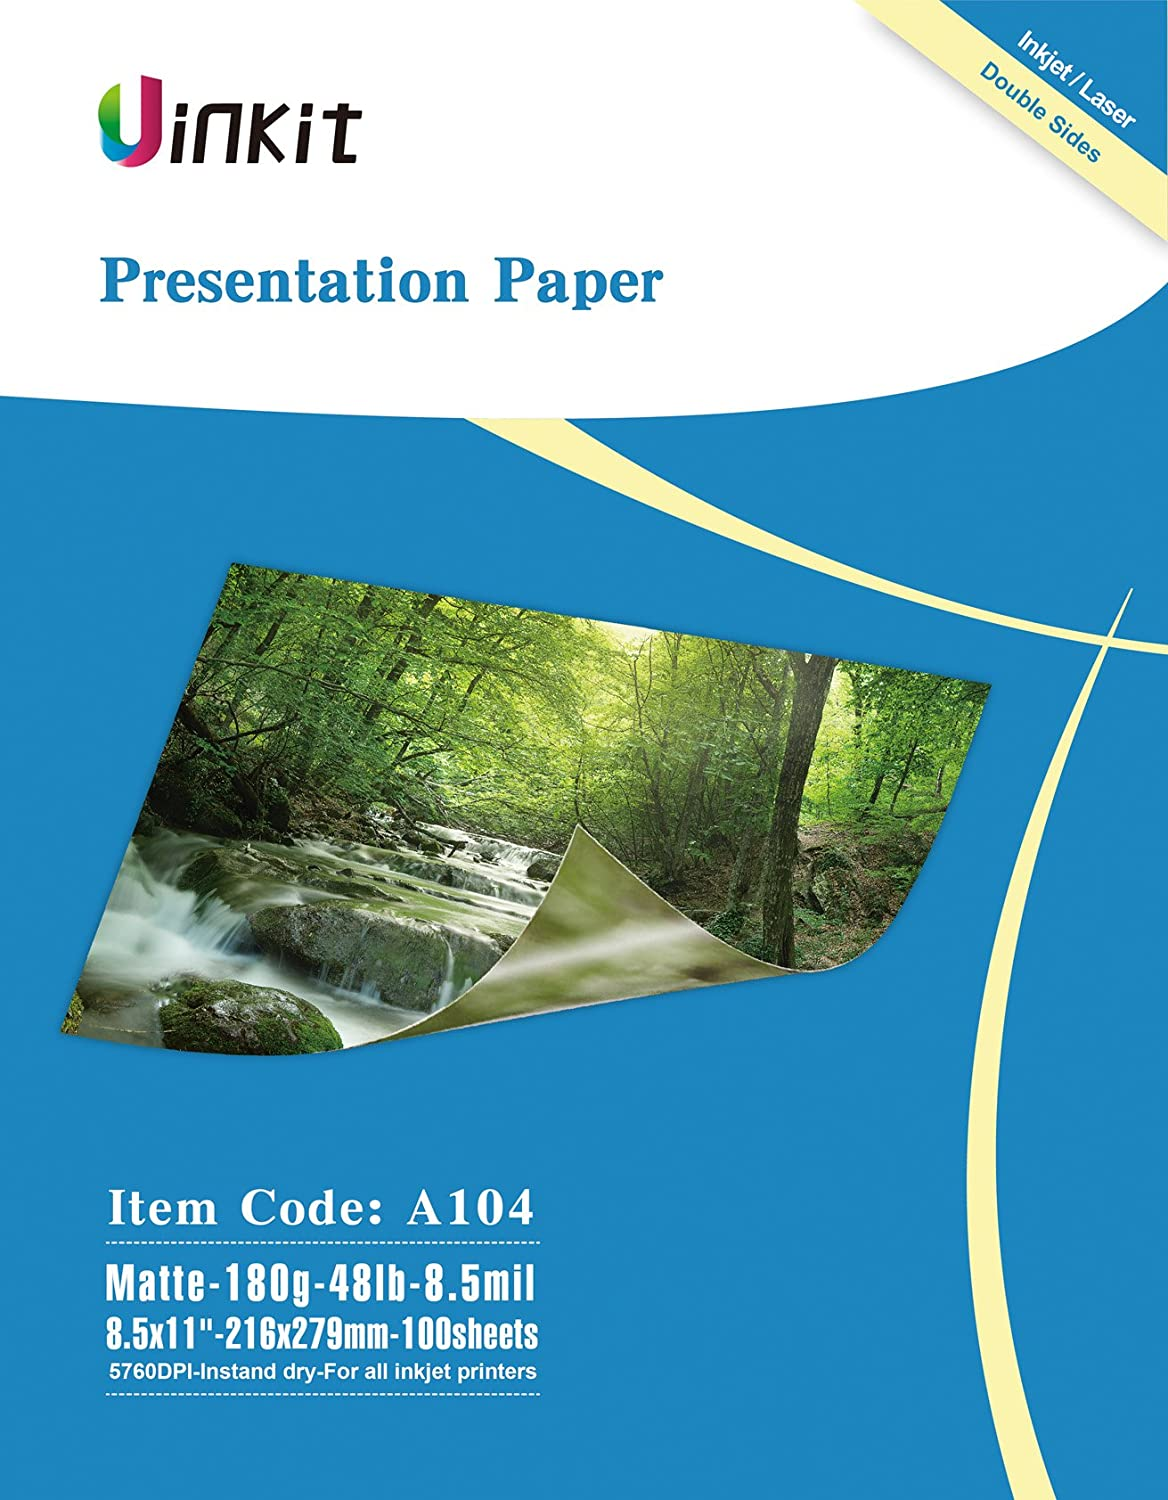 Presentation Paper Double Sides Matte - 100Sheets 8.5x11 Inkjet Photo Paper 8.5Mil 180G For Inkjet Printing Matt Uinkit (A104)